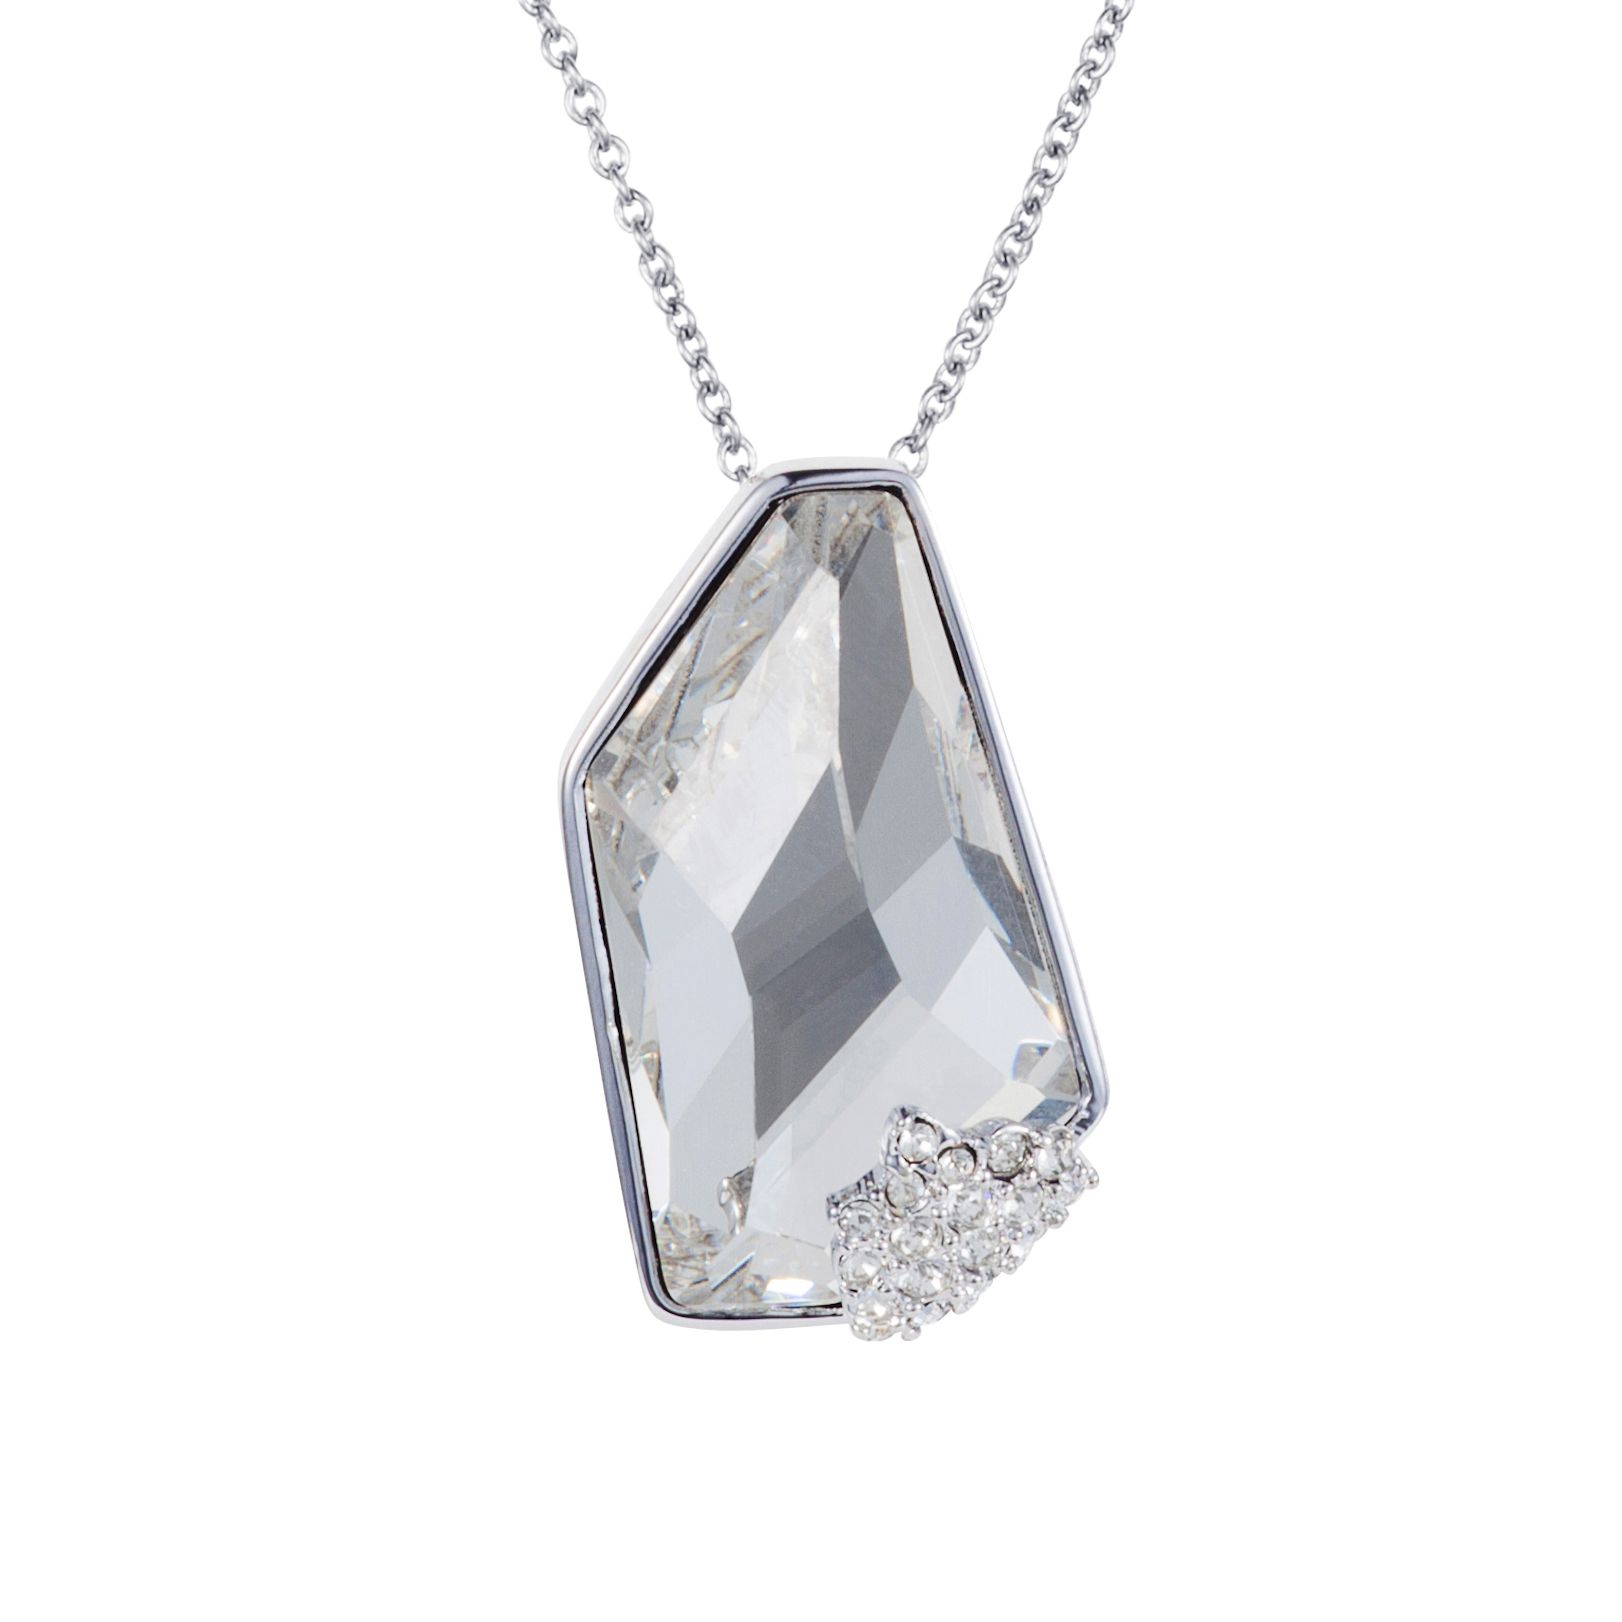 Rhodium plated titania grand galactic cut pendant